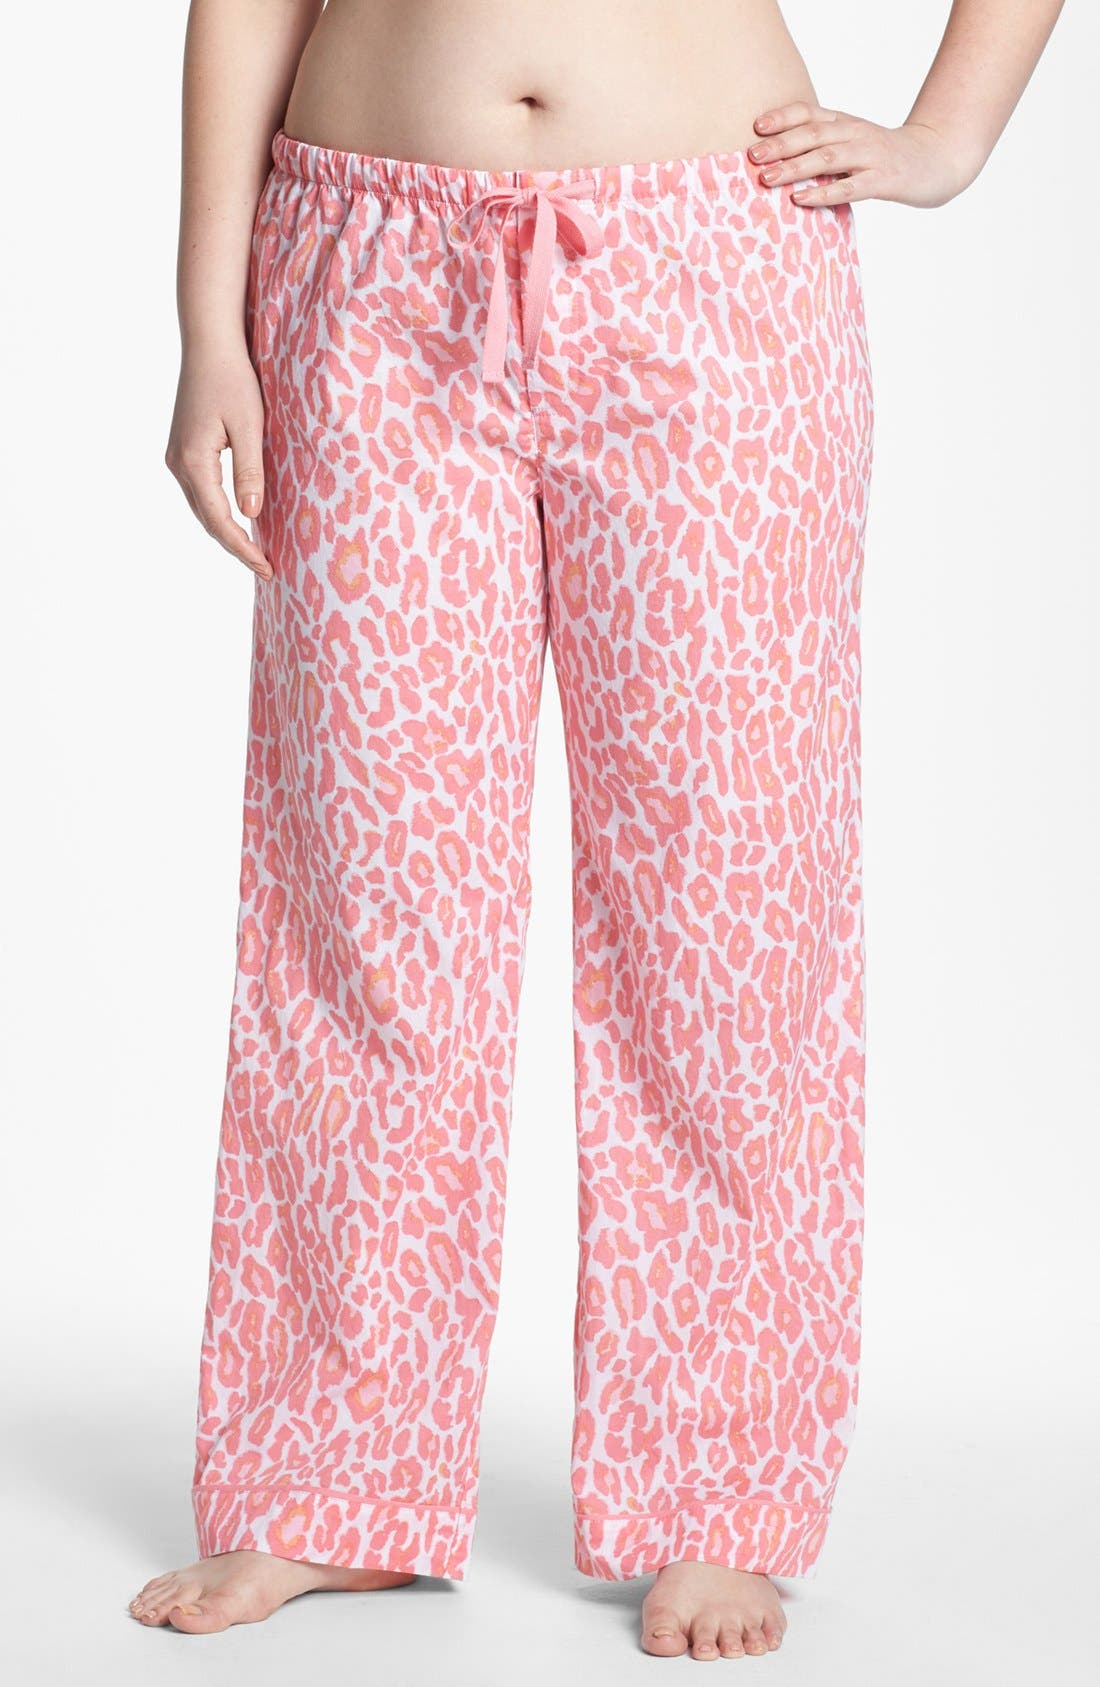 Alternate Image 1 Selected - PJ Salvage Print Lounge Pants (Plus Size) (Online Only)